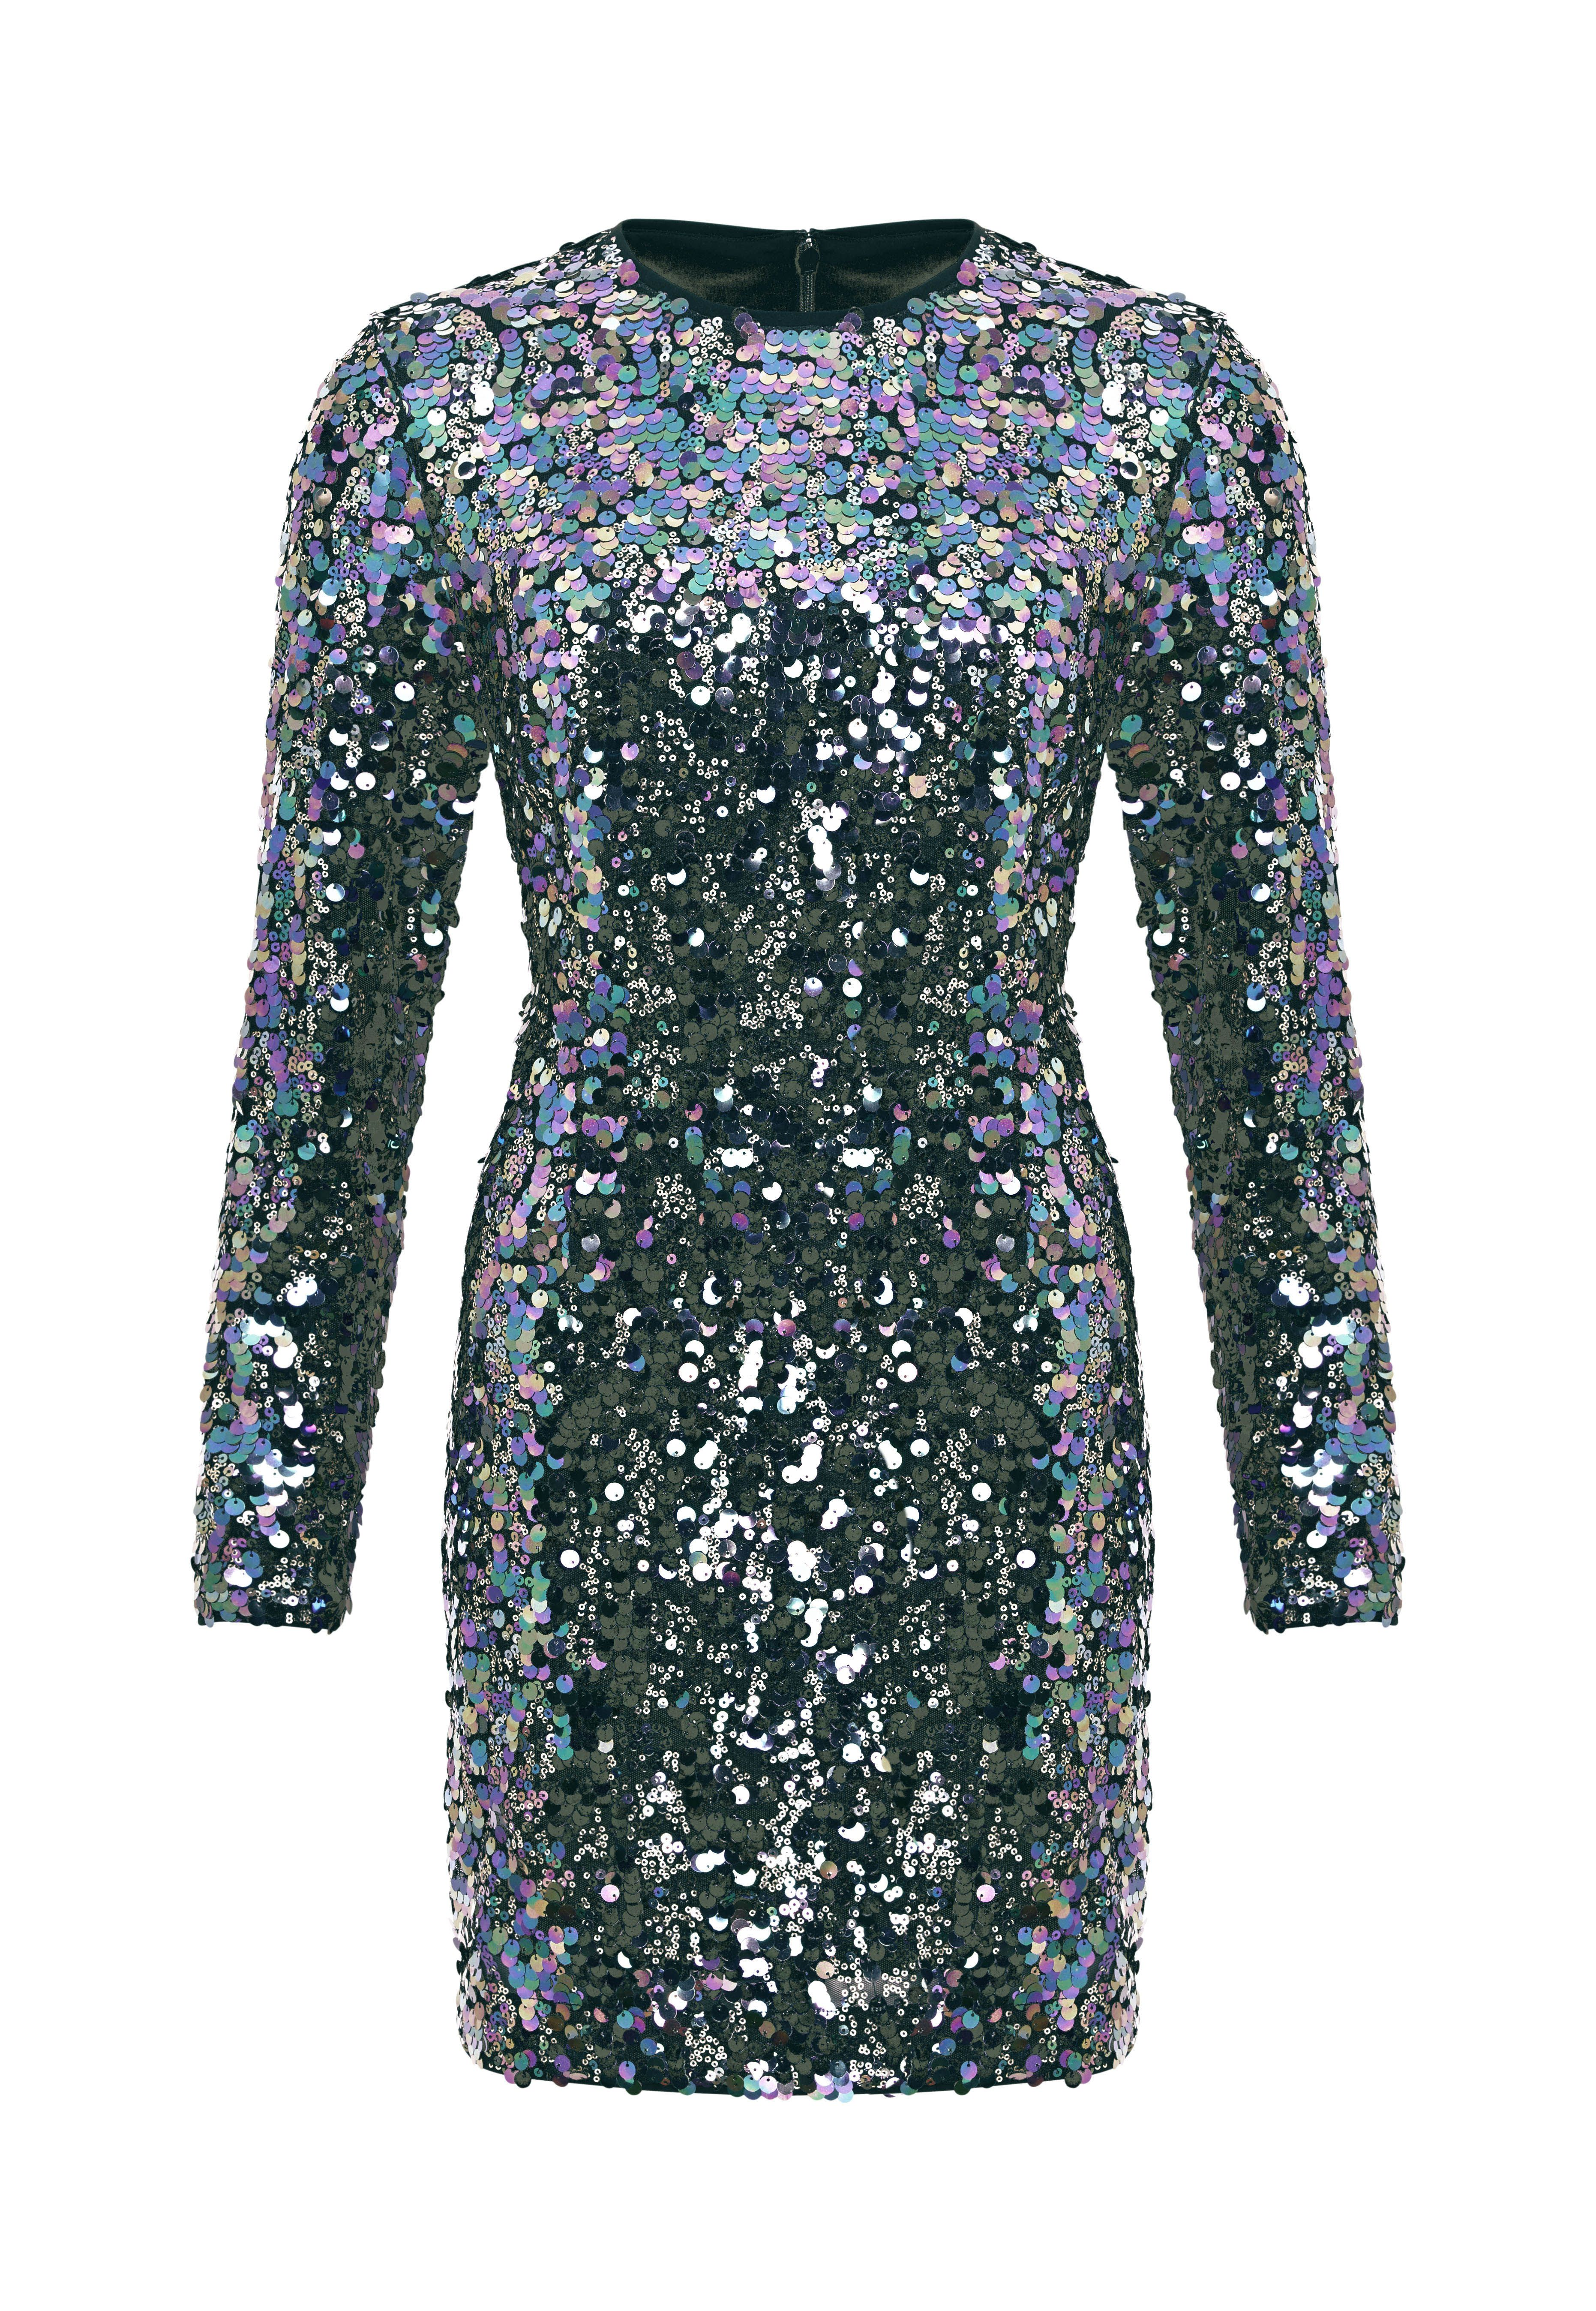 The Best Party Dresses